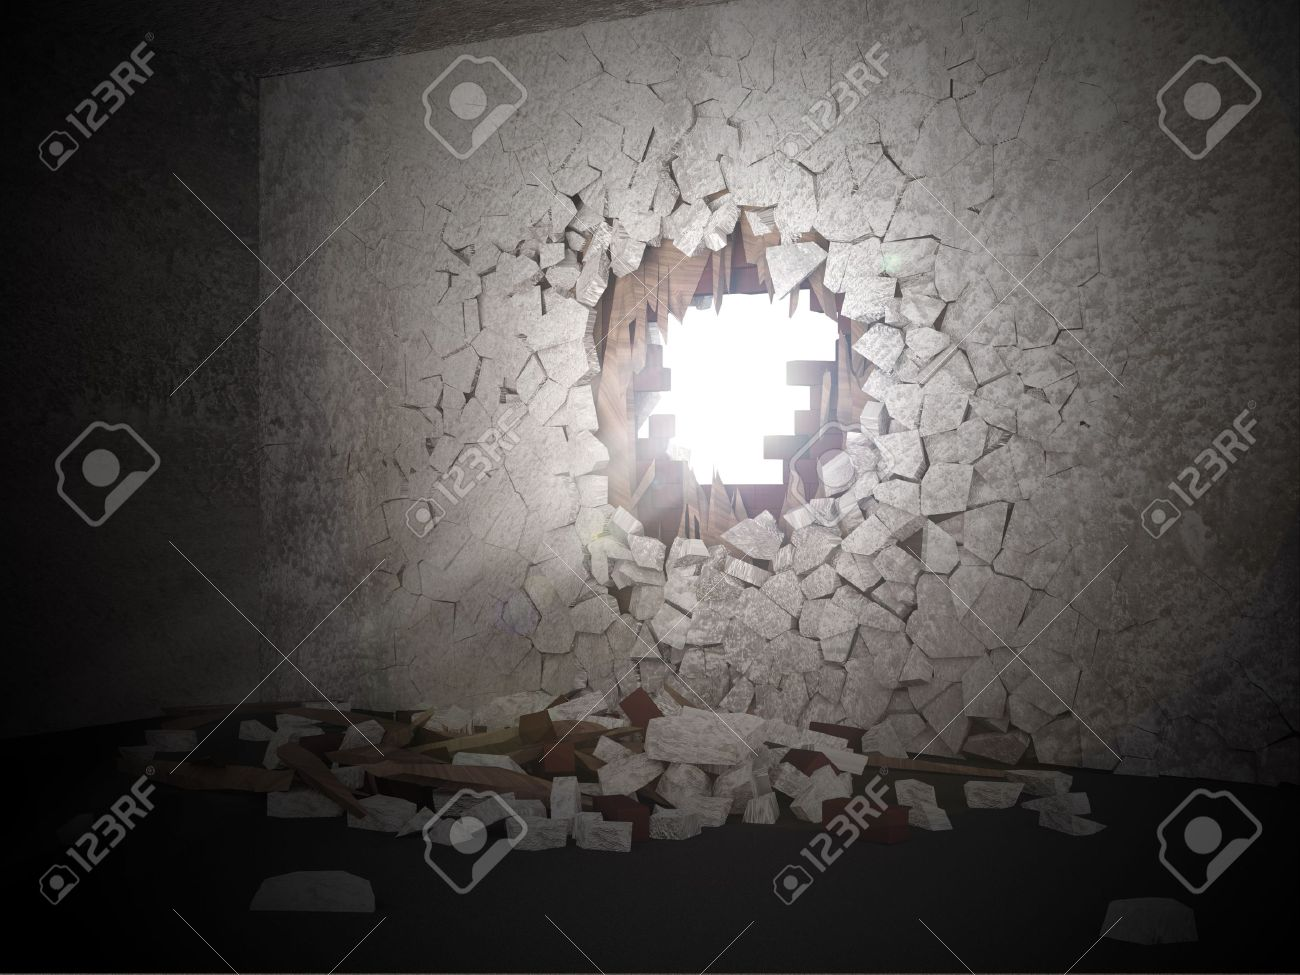 Grunge Room Interior with Sun Rays Breaking Through the Hole in the Concrete Wall Stock Photo - 20217168